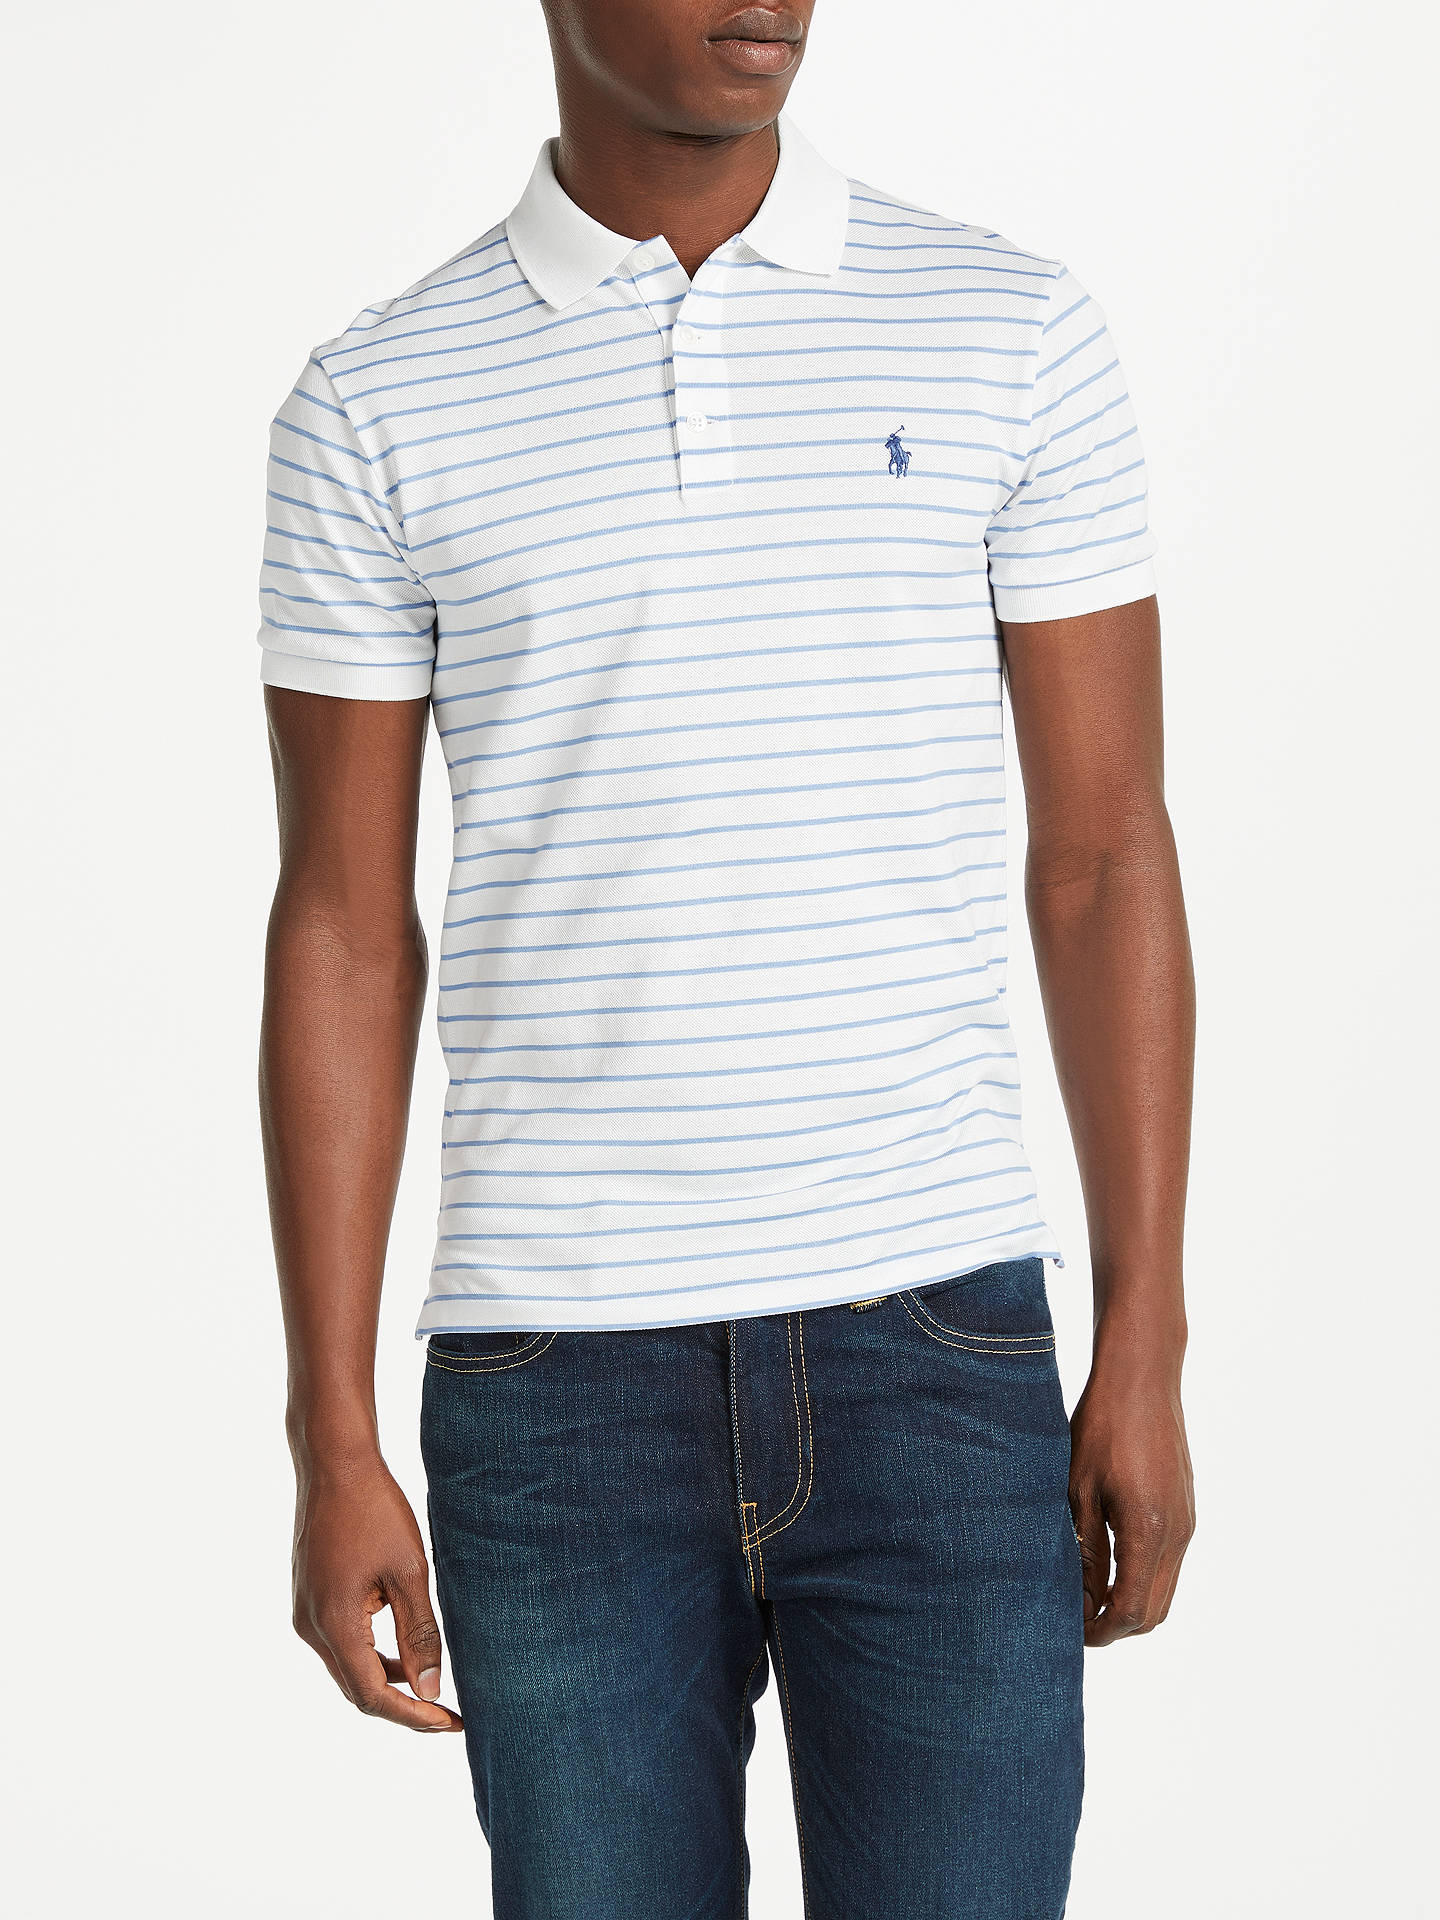 ec6979e6 Buy Polo Ralph Lauren Slim Fit Stretch Stripe Polo Shirt, White/Blue, S ...